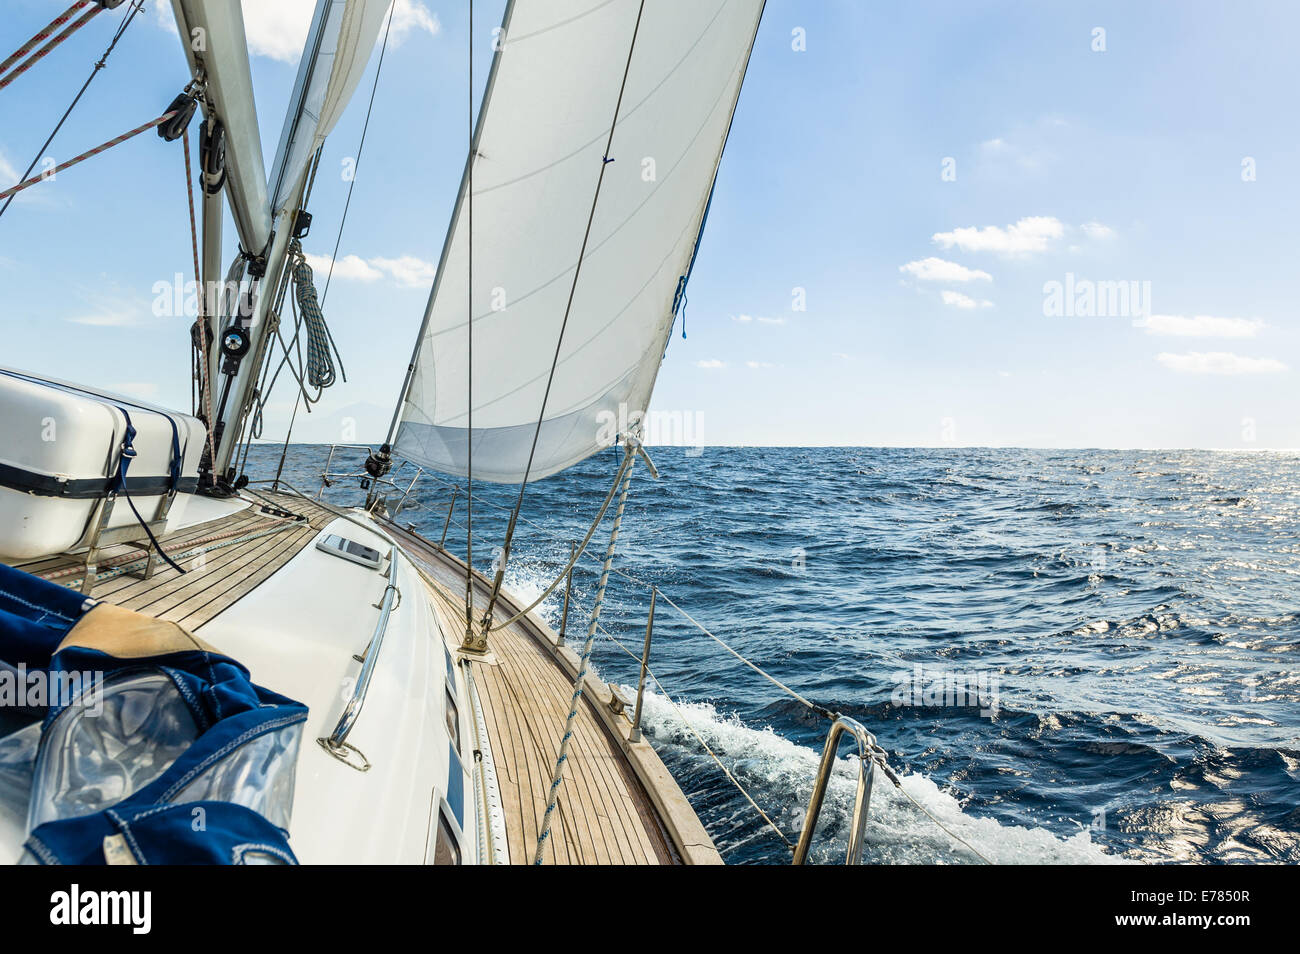 Yacht sail in the Atlantic ocean at sunny day cruise - Stock Image